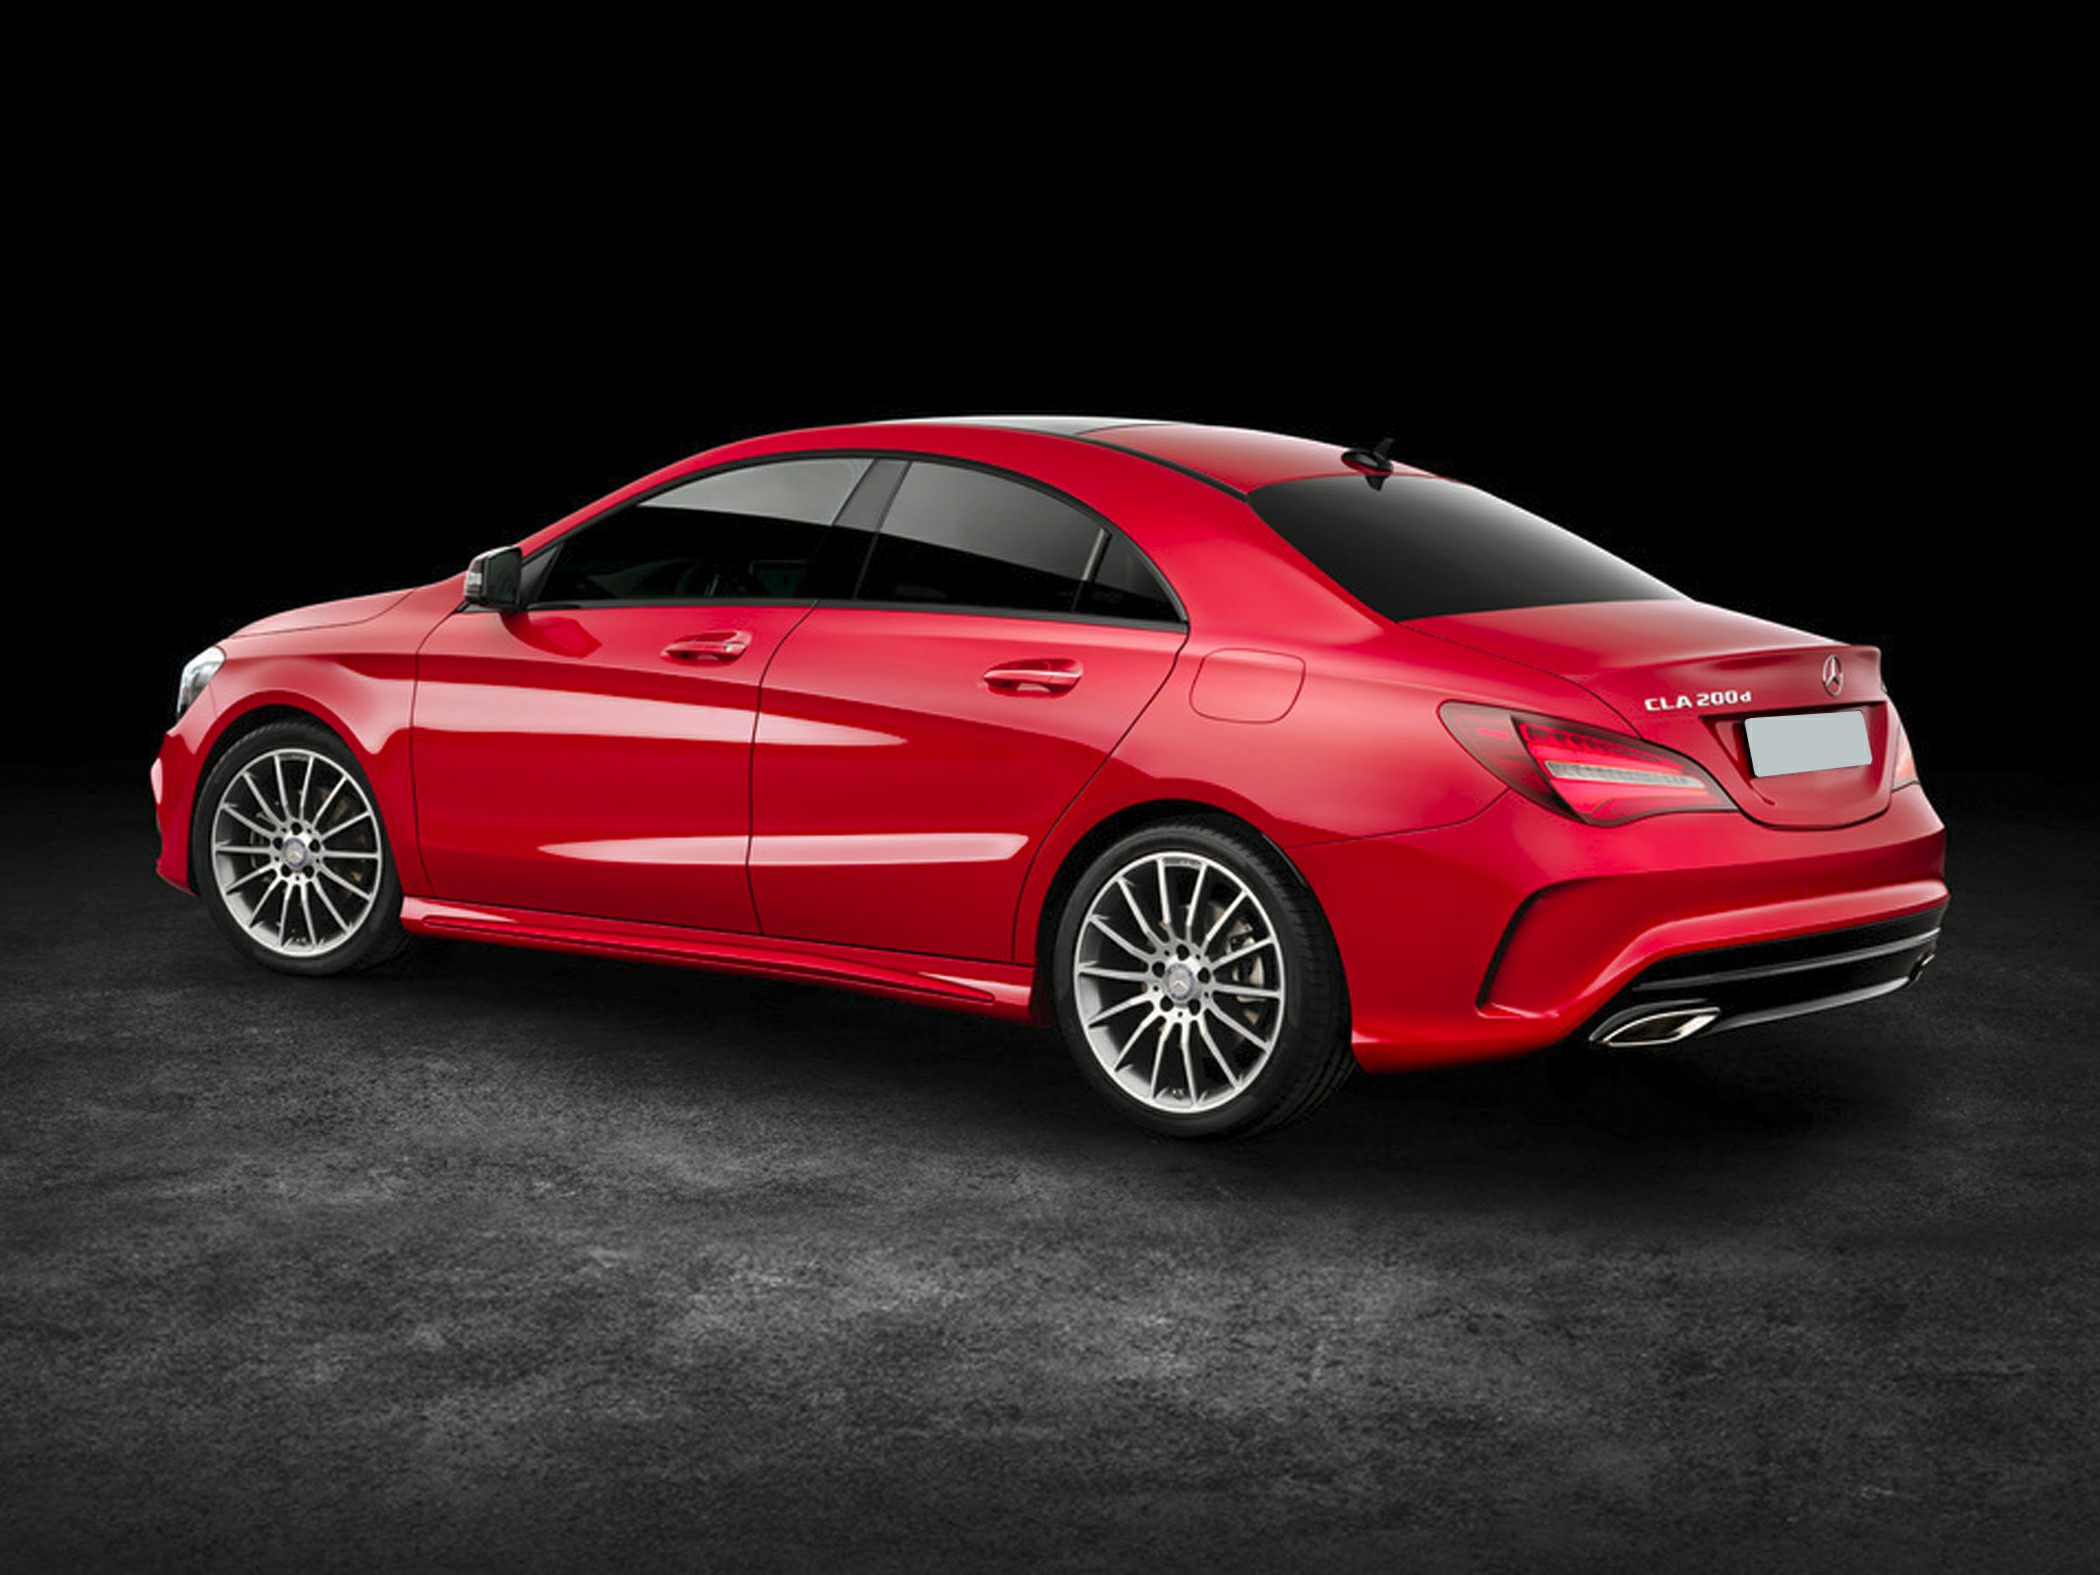 2020 Mercedes-Benz CLA teased with smoother design